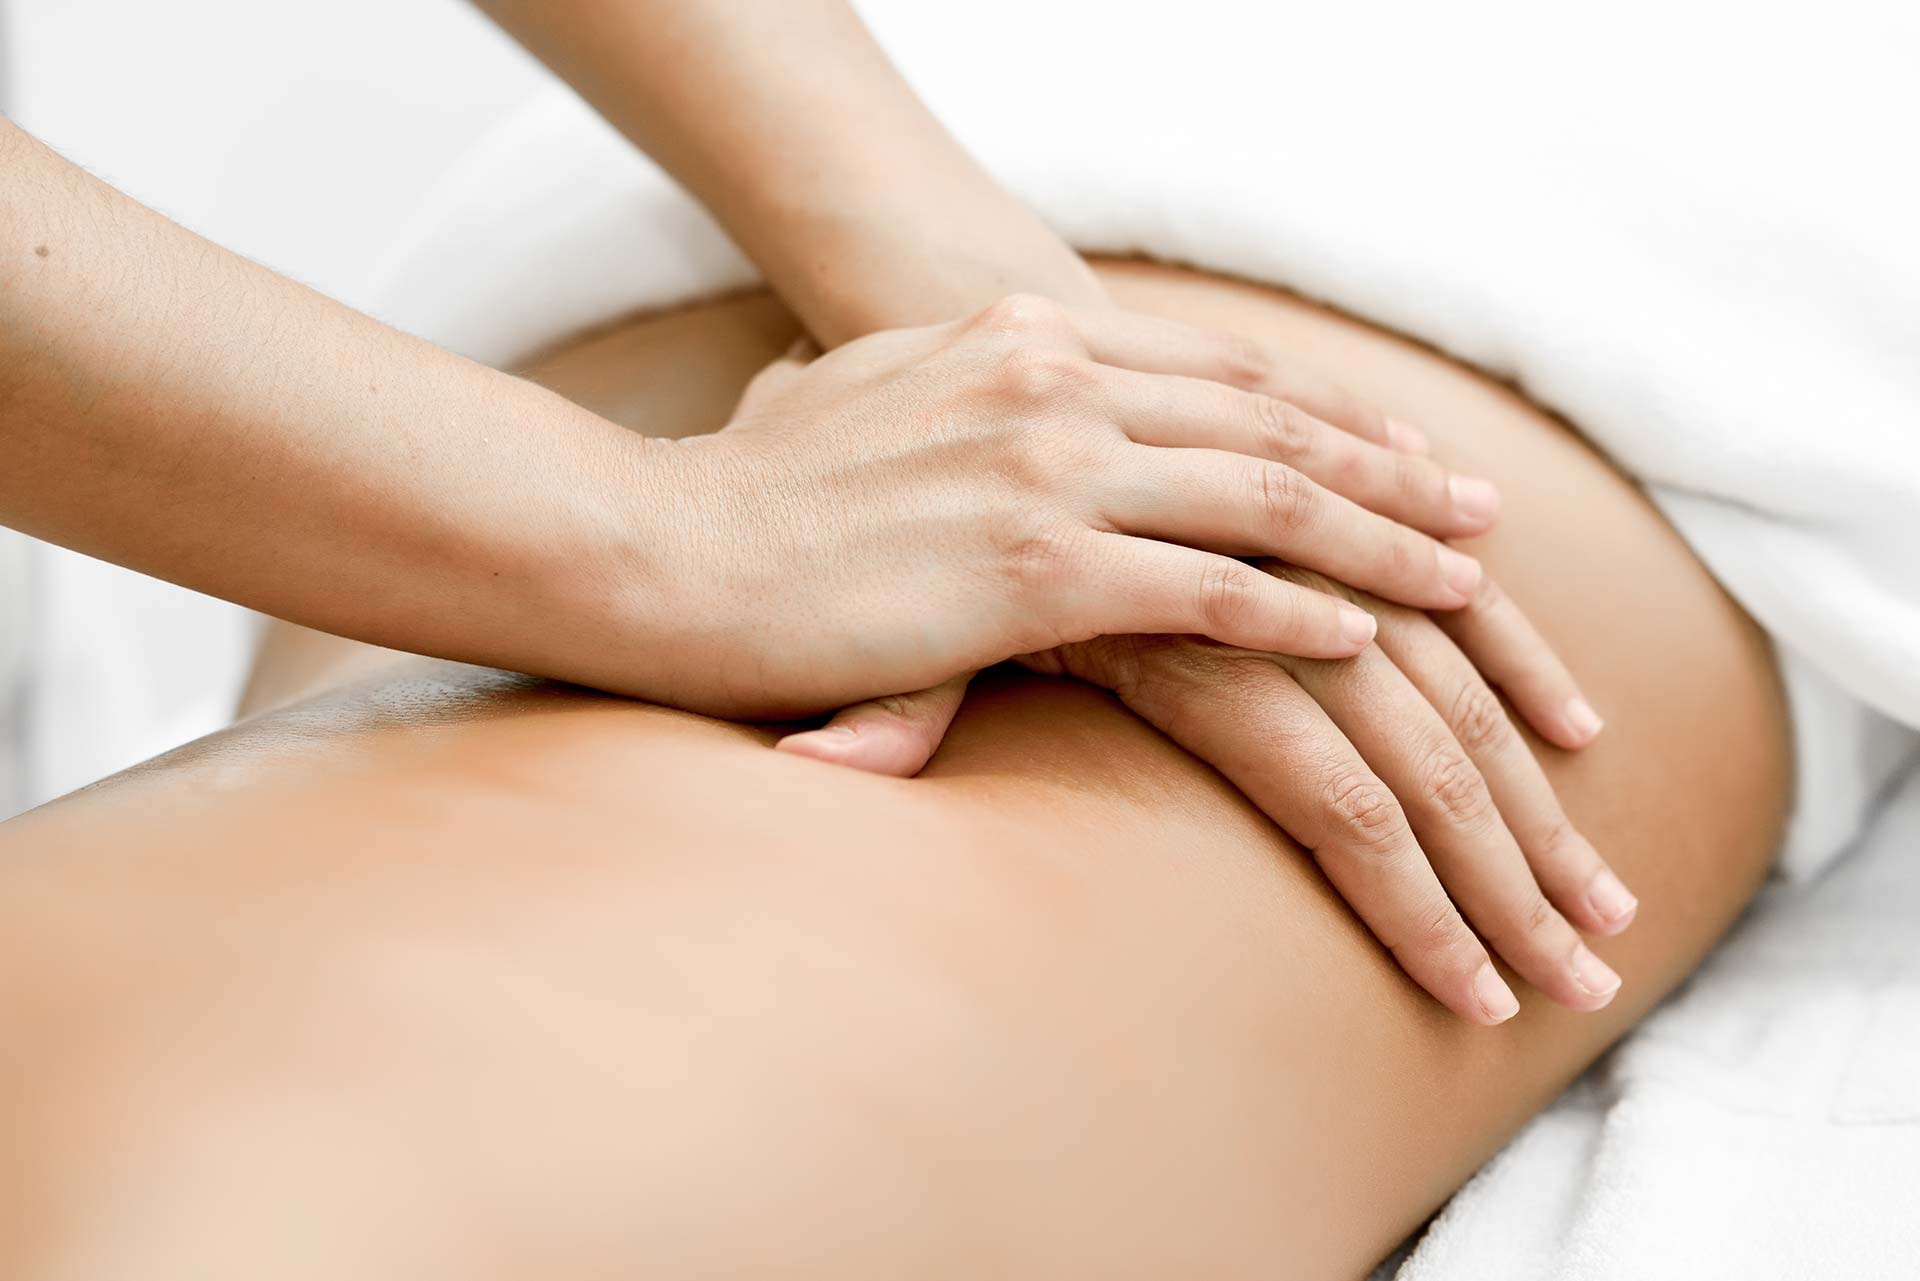 columbia-integrated-health-new-westminster-massage-therapy (1)